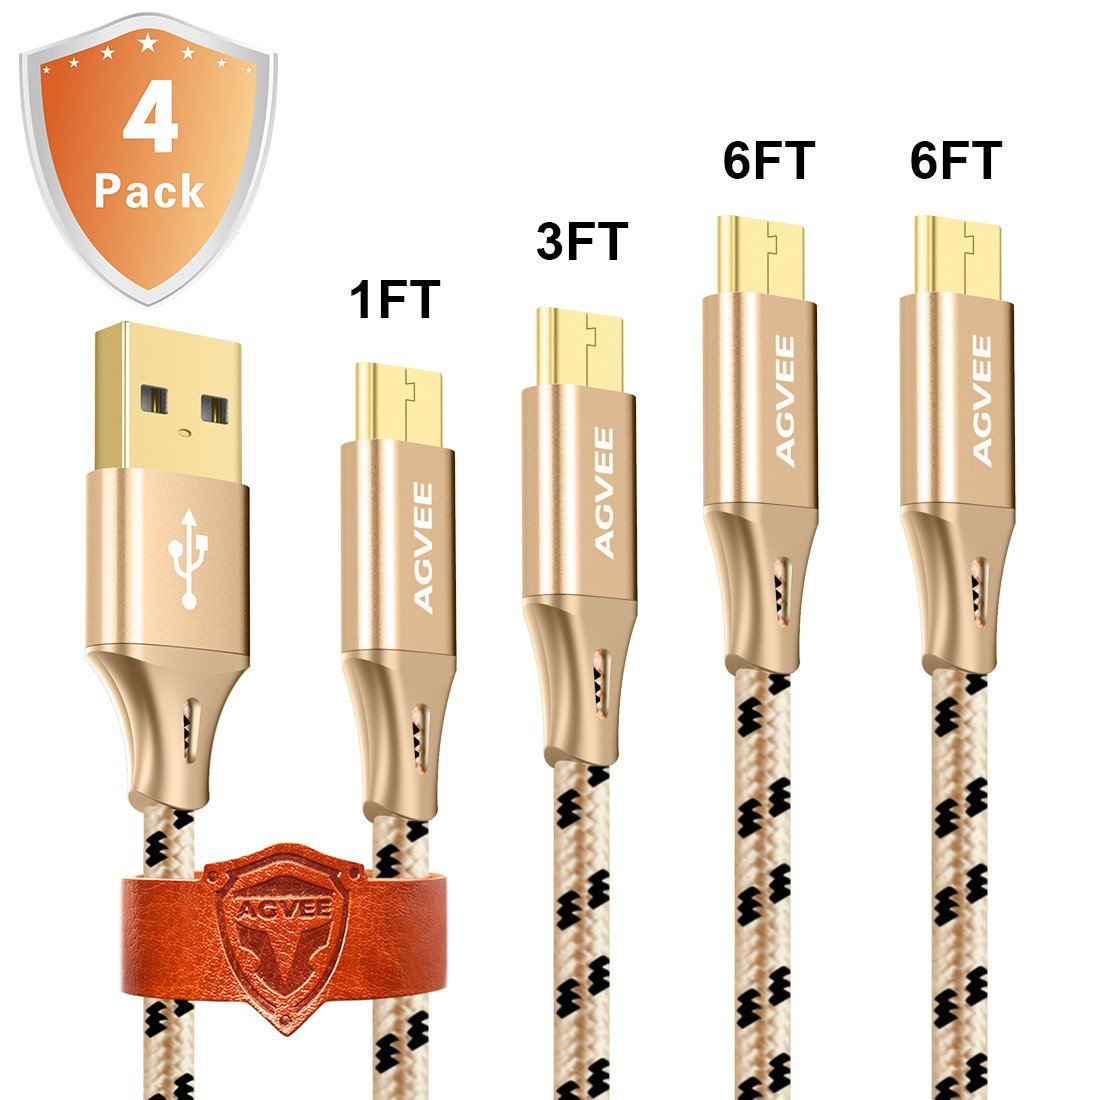 3Amp Heavy Duty, Agvee 4Pack 1Ft 3Ft 6Ft/2m Micro USB Cable Set Nylon Braided, Usb 2.0 Fast Charging Long Data Sync Portable Cord for Wireless Charger Android Samsung Galaxy S7 Edge S6 S5 S4 J7 Note 5